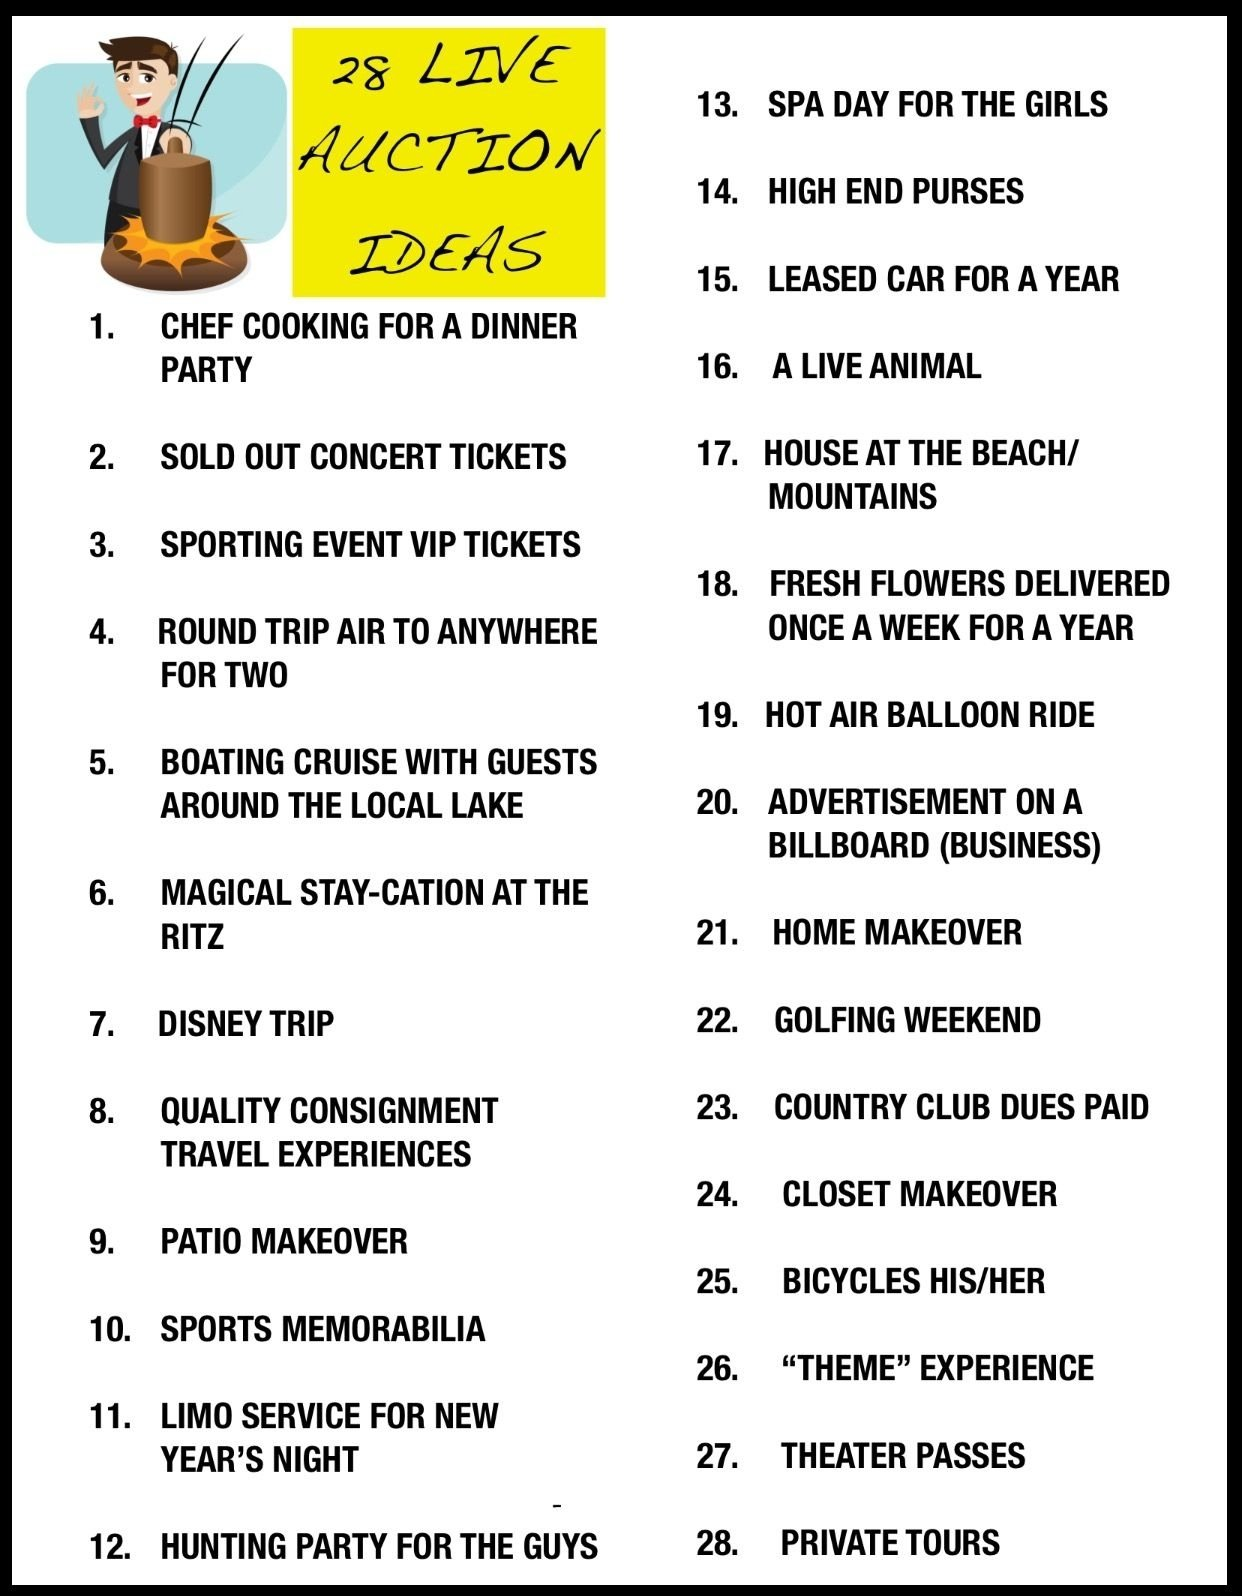 10 Trendy Ideas On How To Raise Money live auction ideas for charity events silent auction ideas 2020